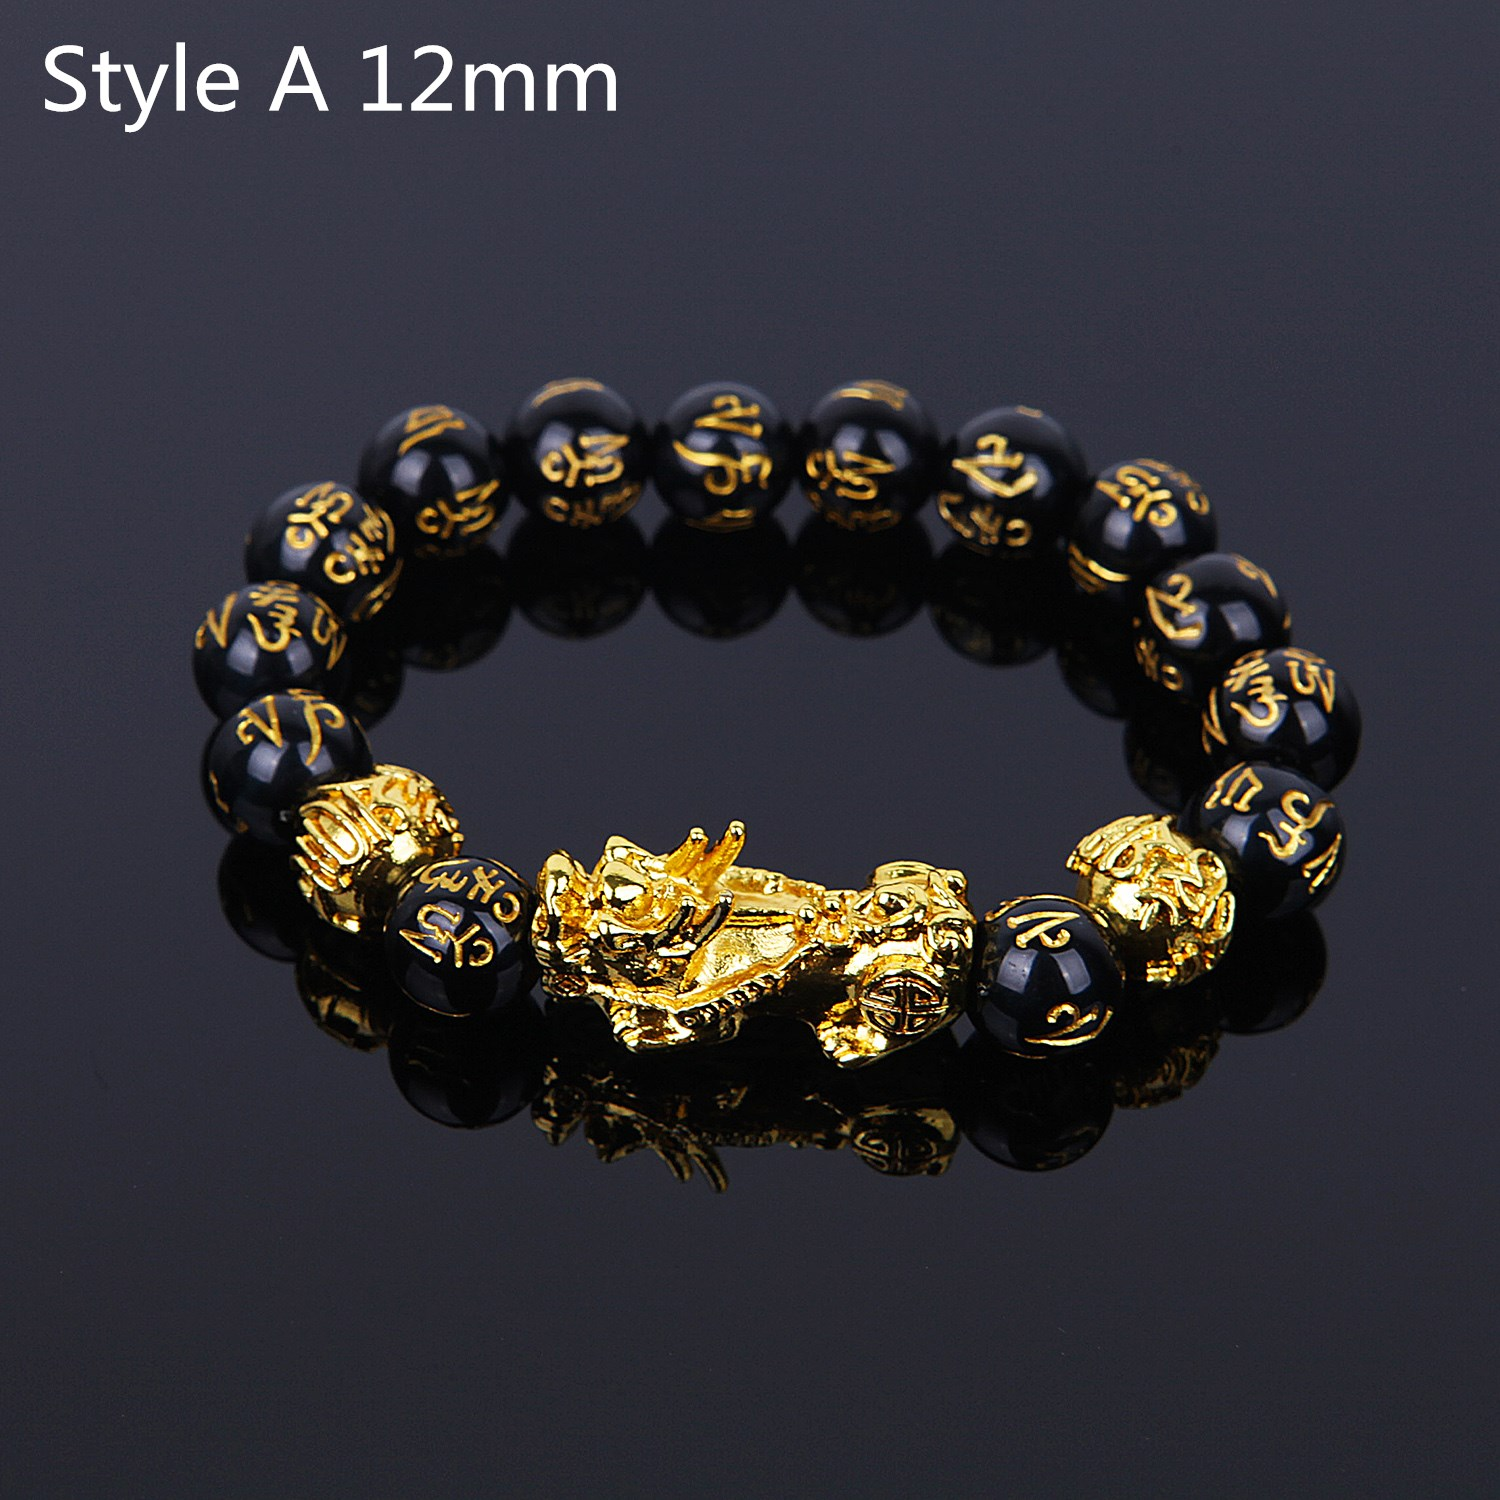 Style A 12mm